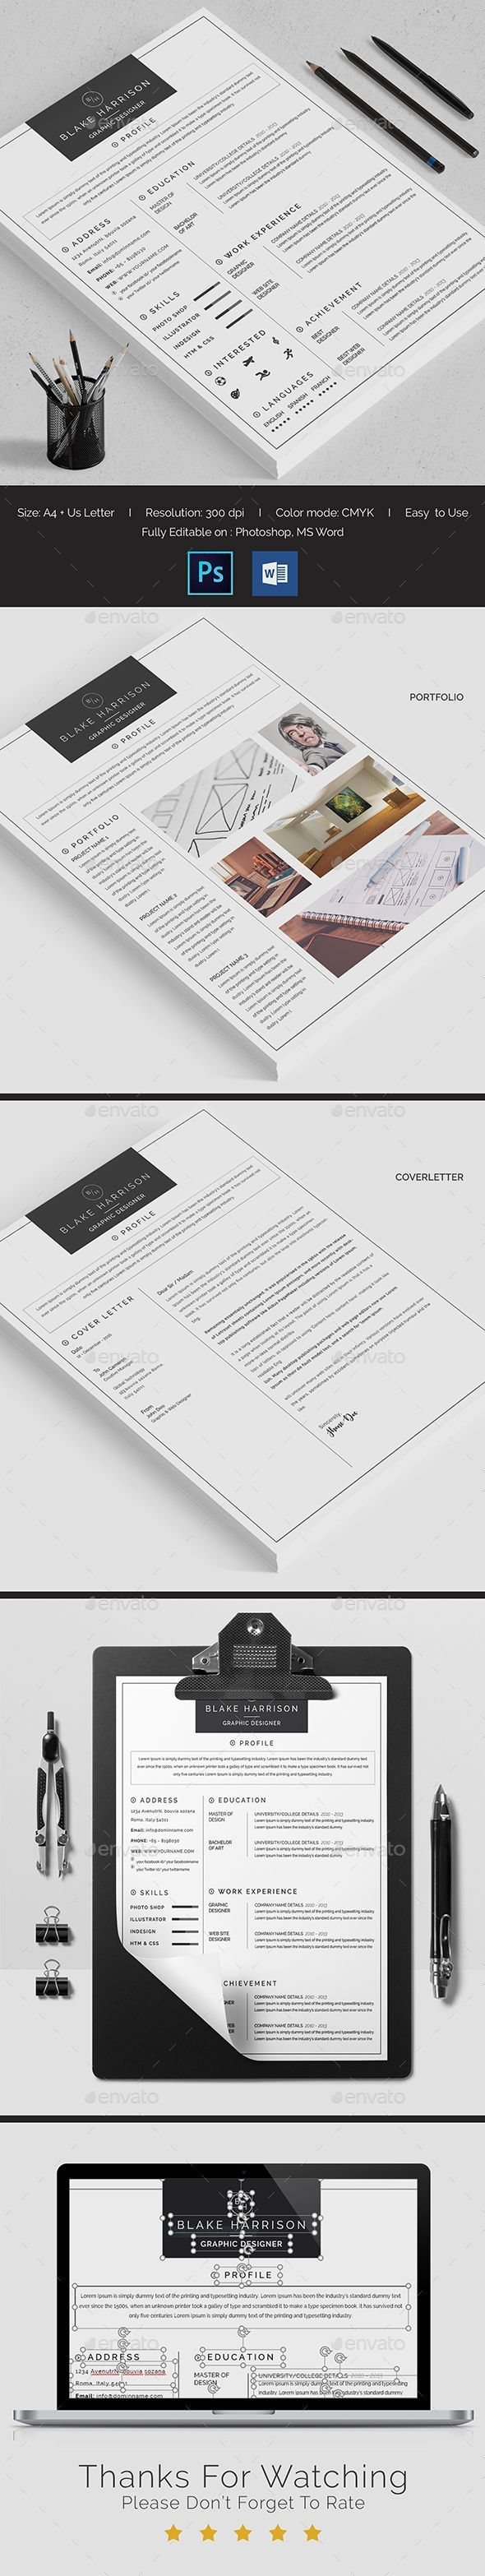 Resume u2014 Photoshop PSD 2 piece resume career